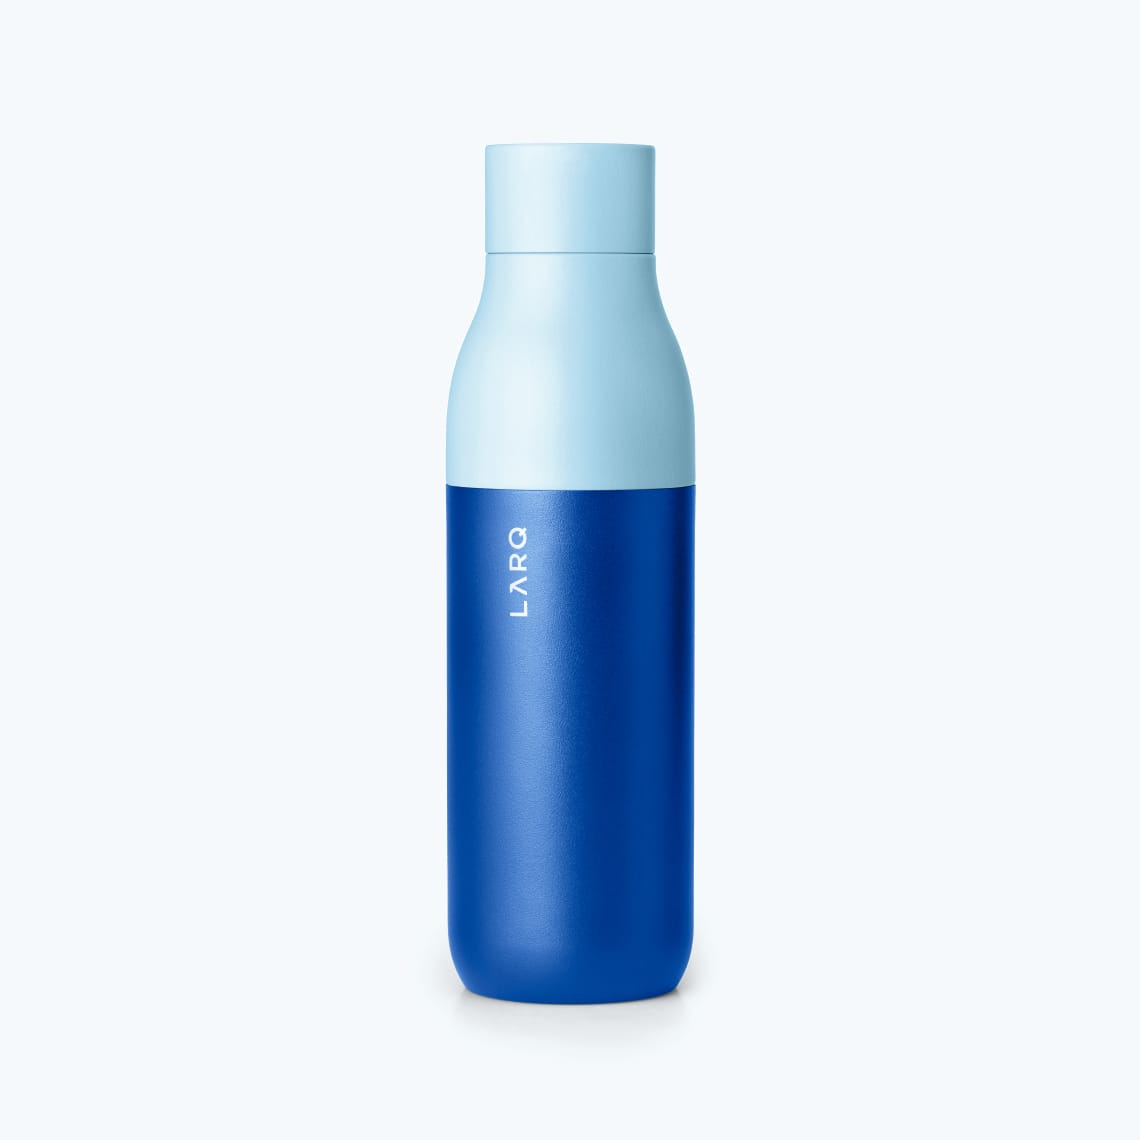 LARQ Bottle PureVis™ Electro Blue secondary